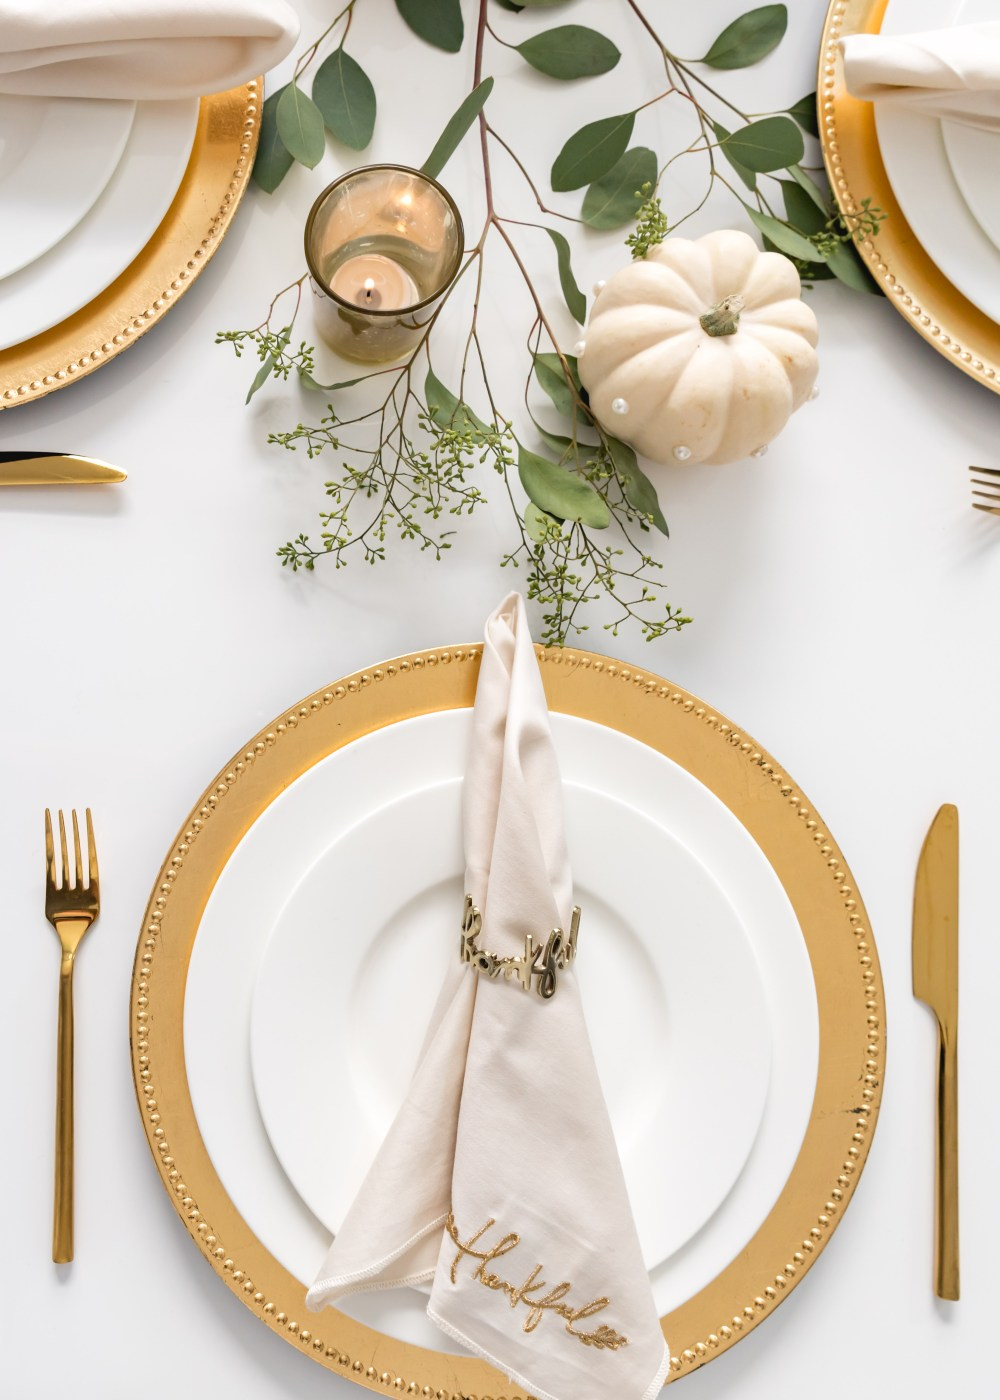 Thankful Napkin Ring and Napkin Crate and Barrel Fancy Things